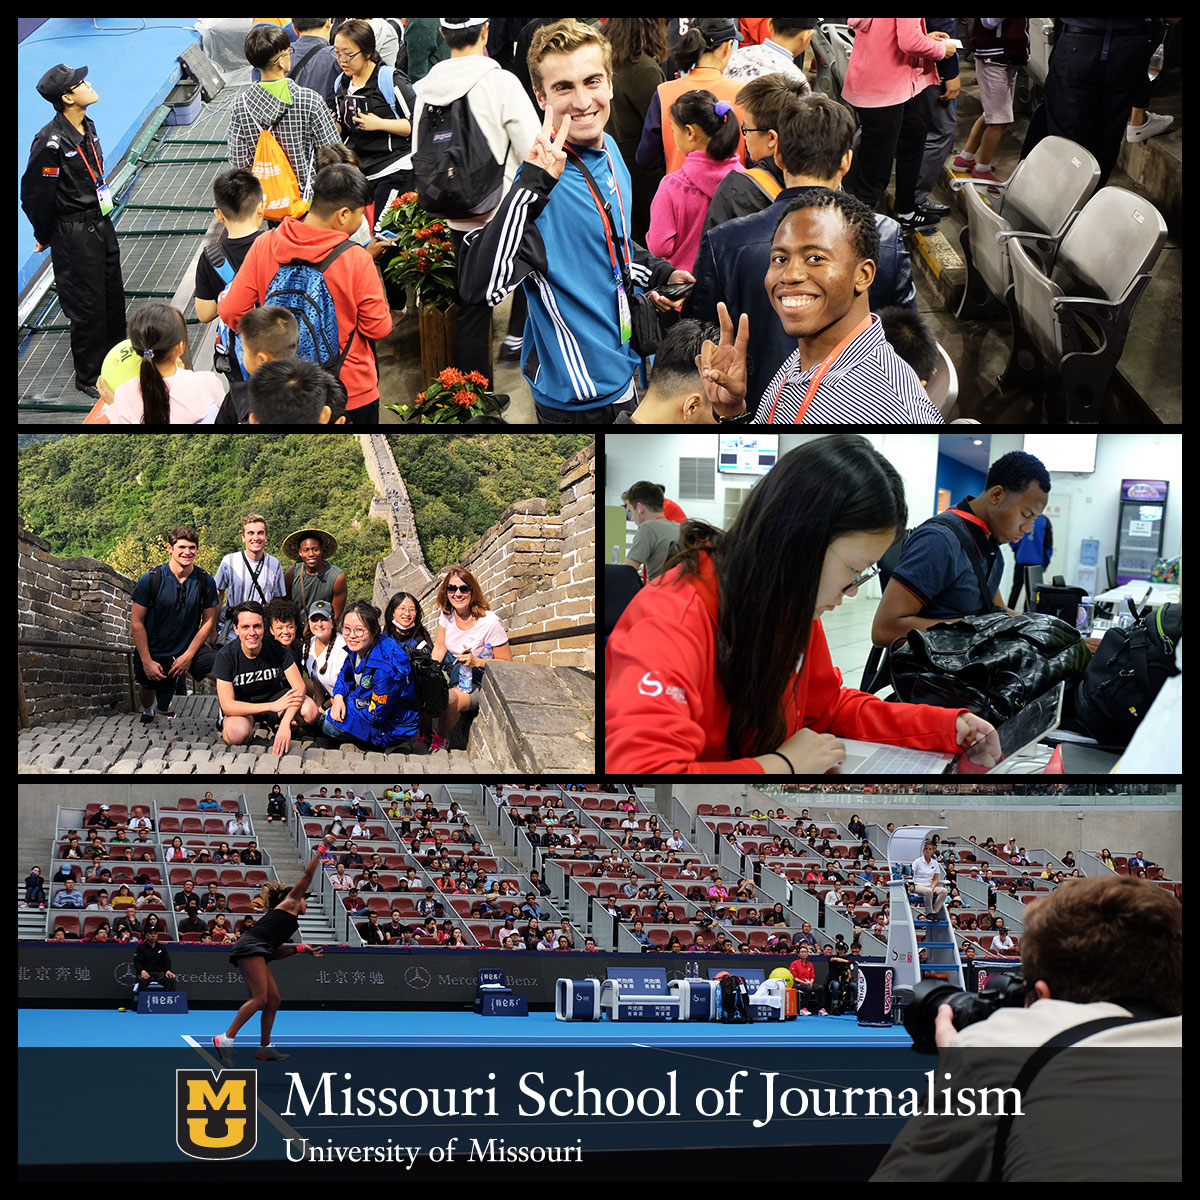 Missouri Student Journalists at 2018 China Open